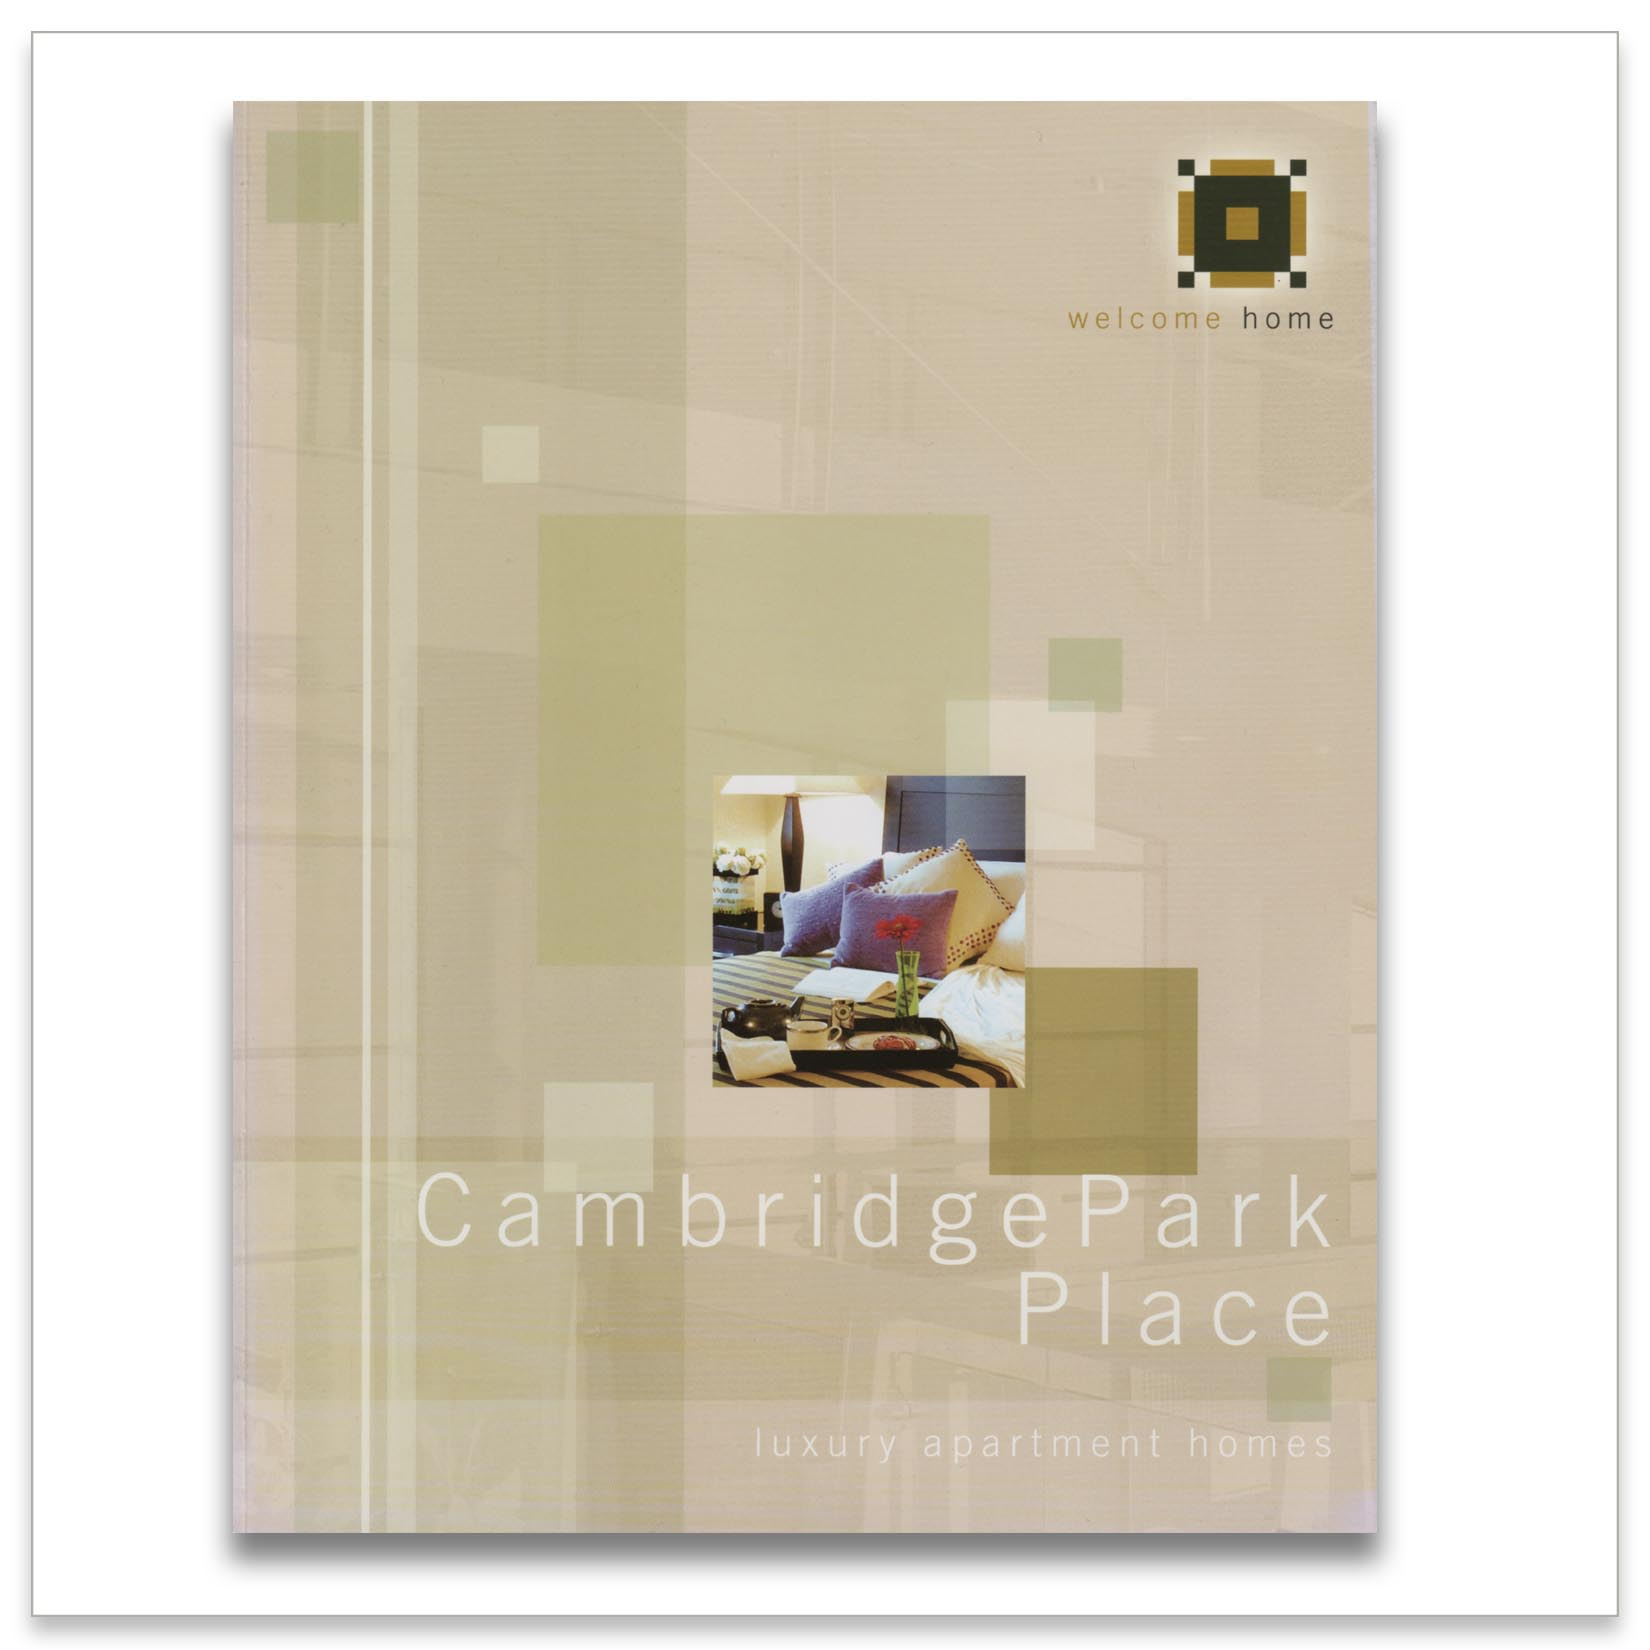 WorkSamples_CambridgePark.jpg